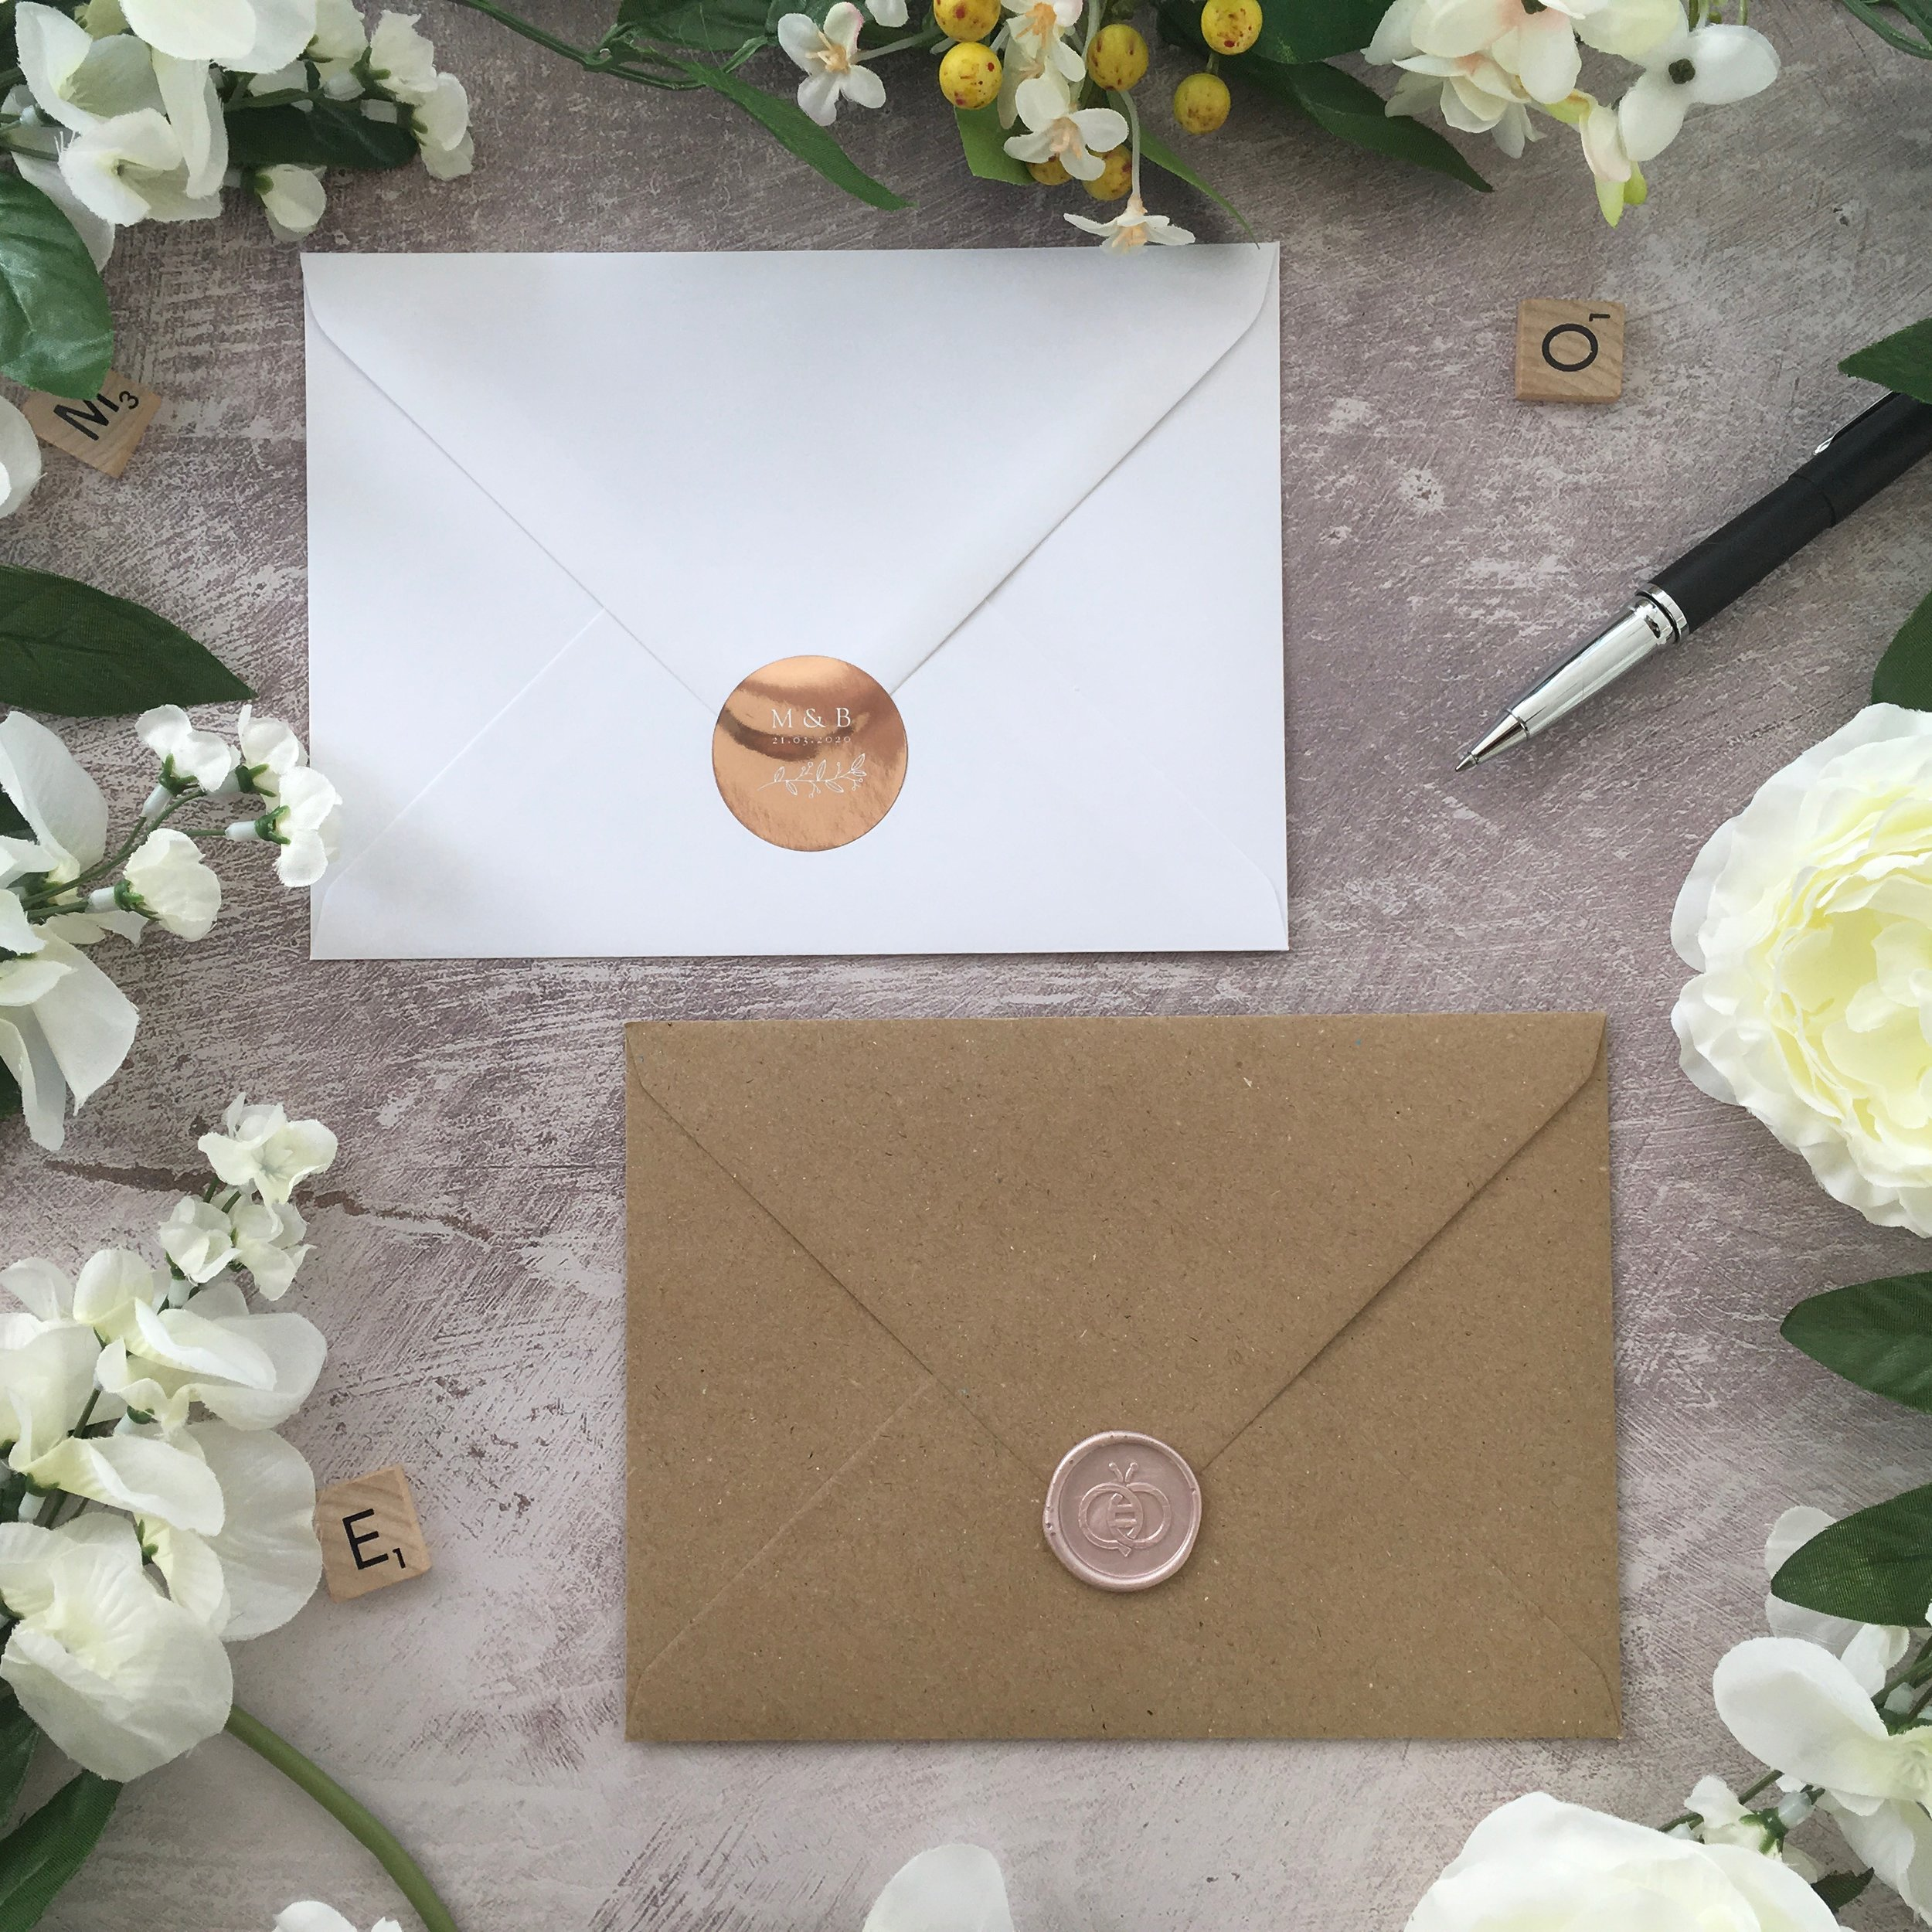 Stickers & Wax Seals - Whilst stickers and wax seals are used to seal a vellum jacket, they are also a beautiful addition to sealing your envelopes.Stickers are available in gold, silver or rose gold with the design matching your invitation design, bearing your details.Wax seals are meticulously hand-pressed and are available in a number of house designs and colours, or you can opt for a personalised etching to create your self-adhesive seals.